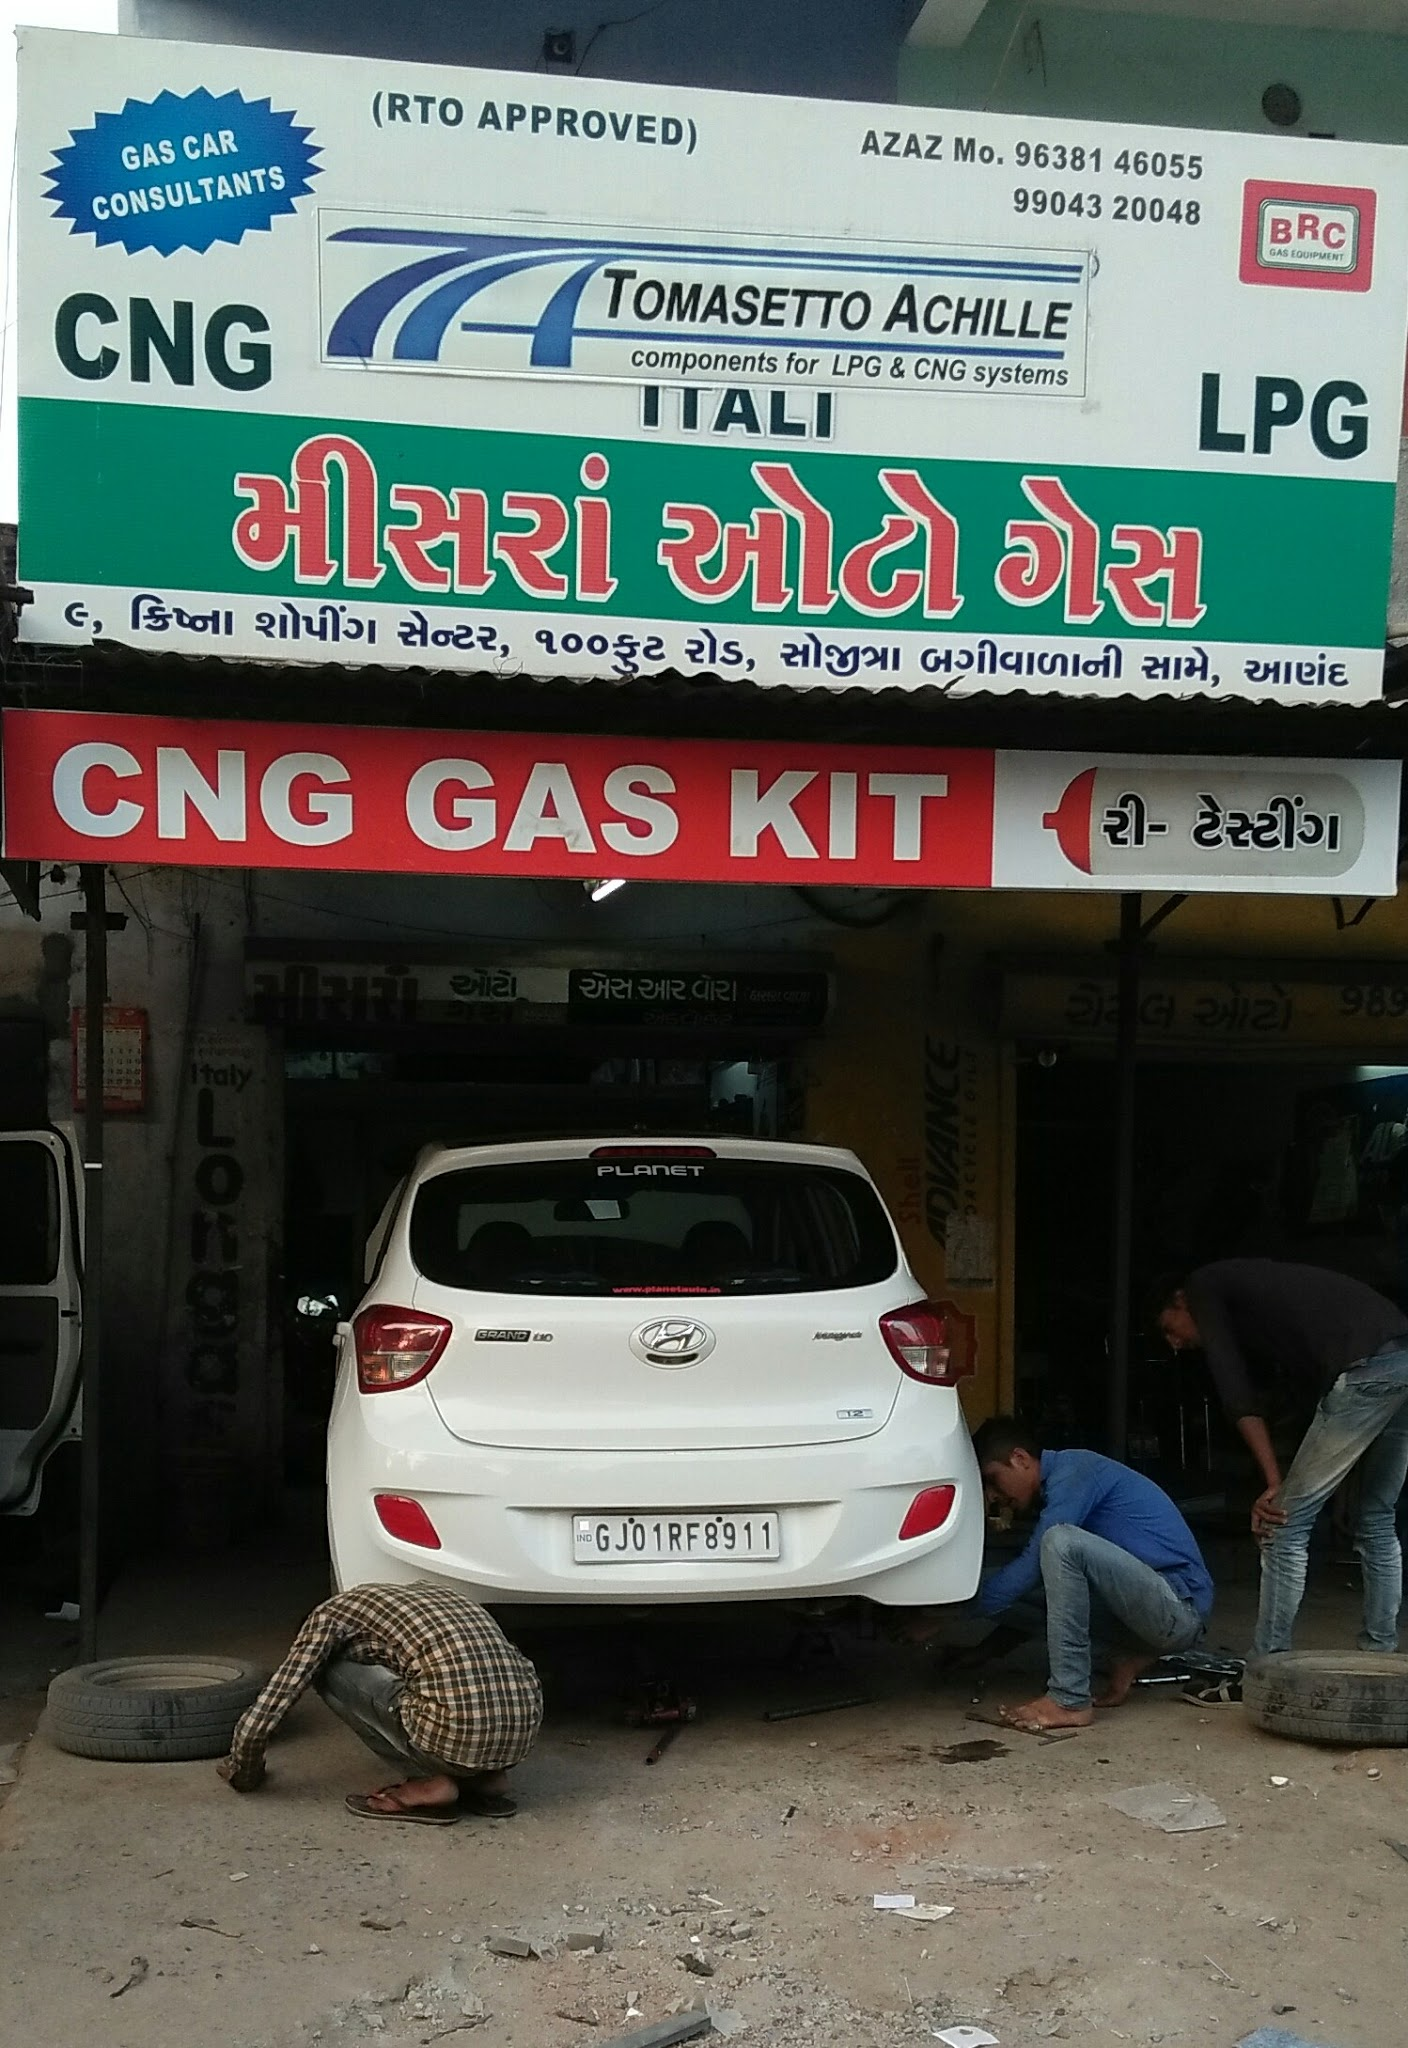 We provide already fitted tomasetto lovato brc and other indian italian cng kit brands repair service we also provide cylinder retesting service at the